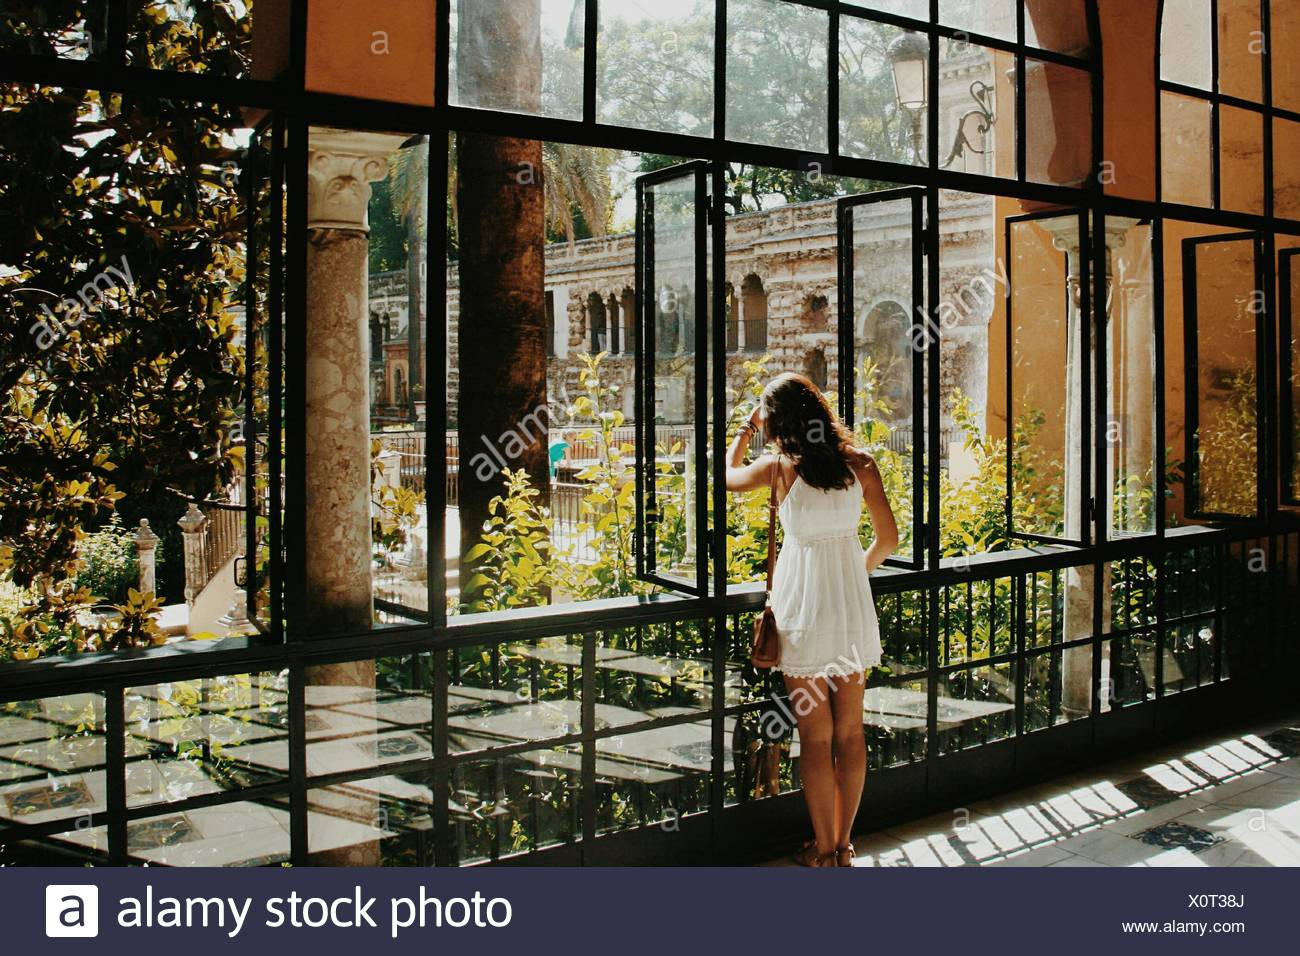 Rear View Of Young Woman Looking Through Window - Stock Image